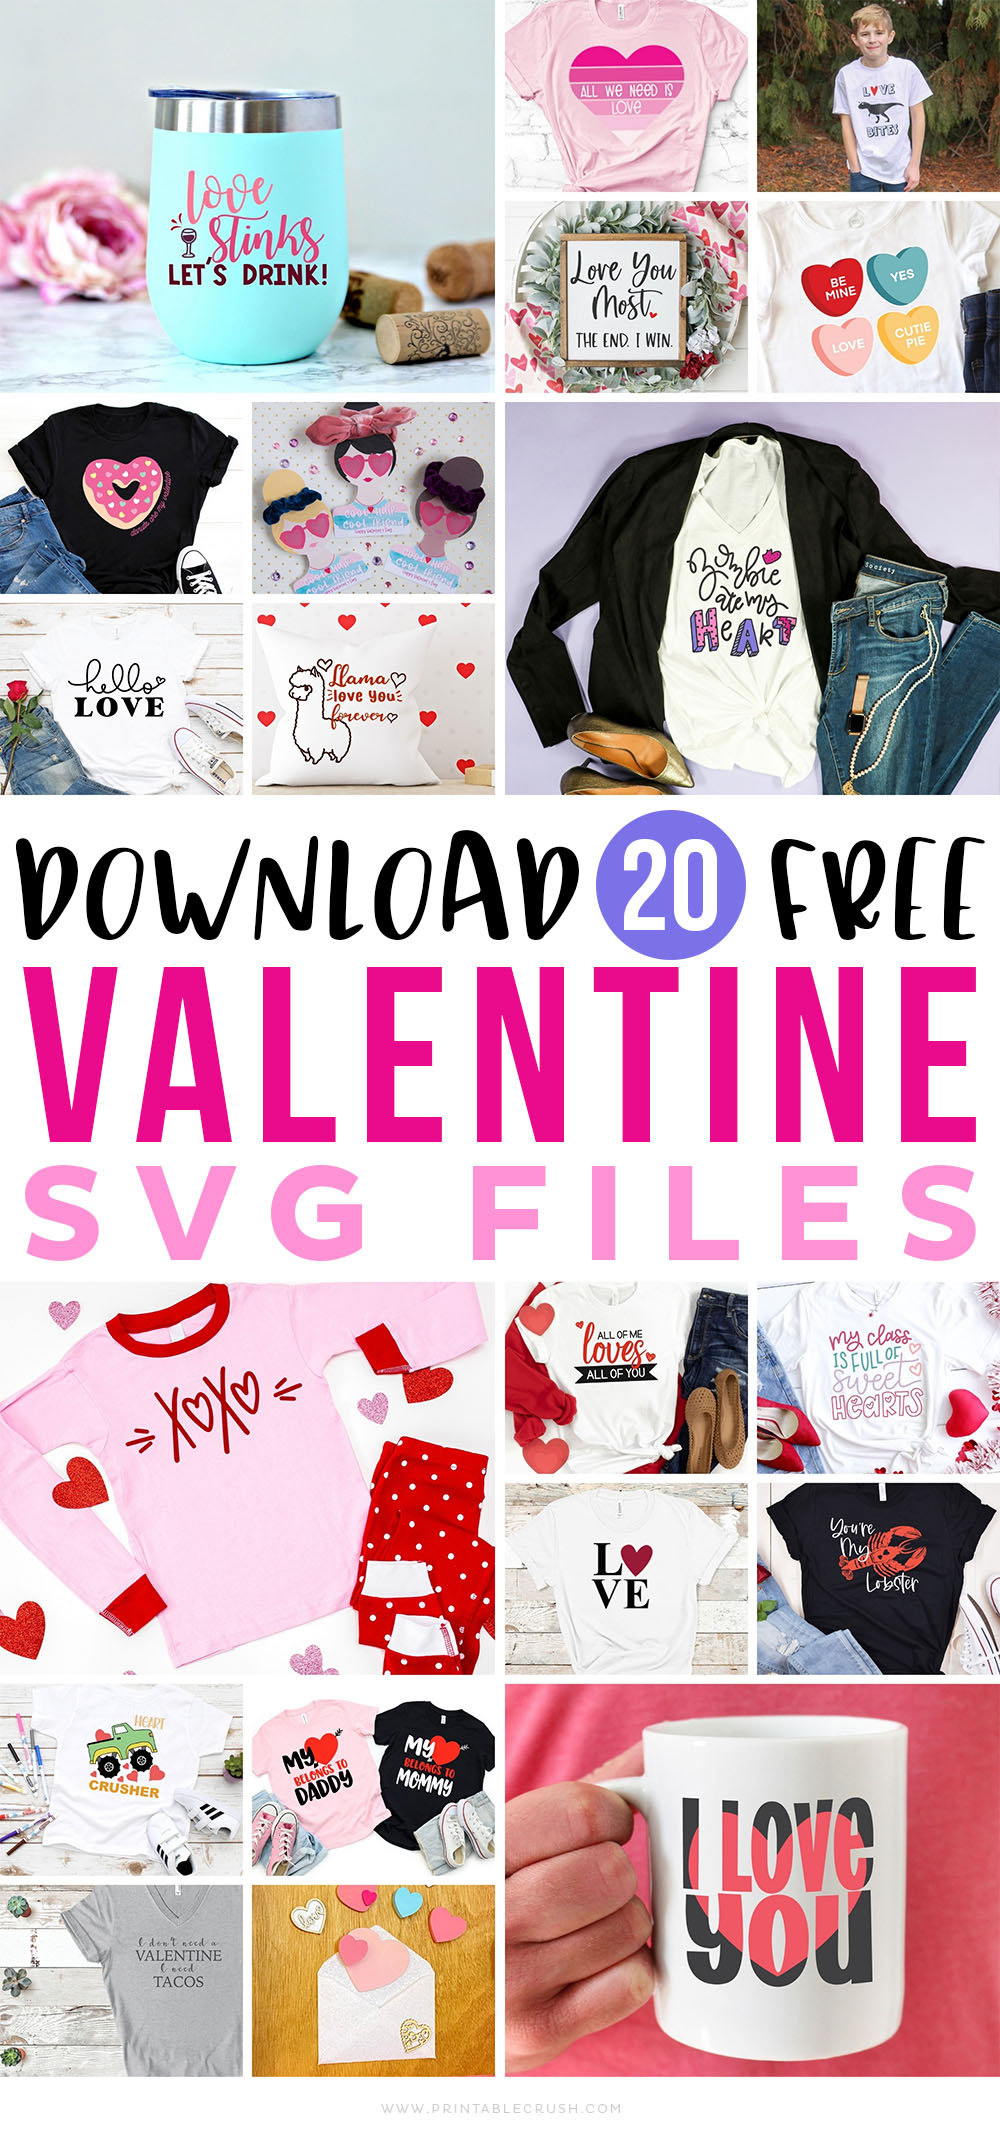 Free SVG File for Valentine's Day - SVG File for someone who hates Valentine's Day - Anti-Valentine SVG File - Zombie Ate My Heart SVG File - Personal Use SVG File Printable Crush #valentinesday #antivalentinesday #printablecrush #svgfiles #cricutcutfiles #freesvgfiles #valentinecricutcrafts via @printablecrush